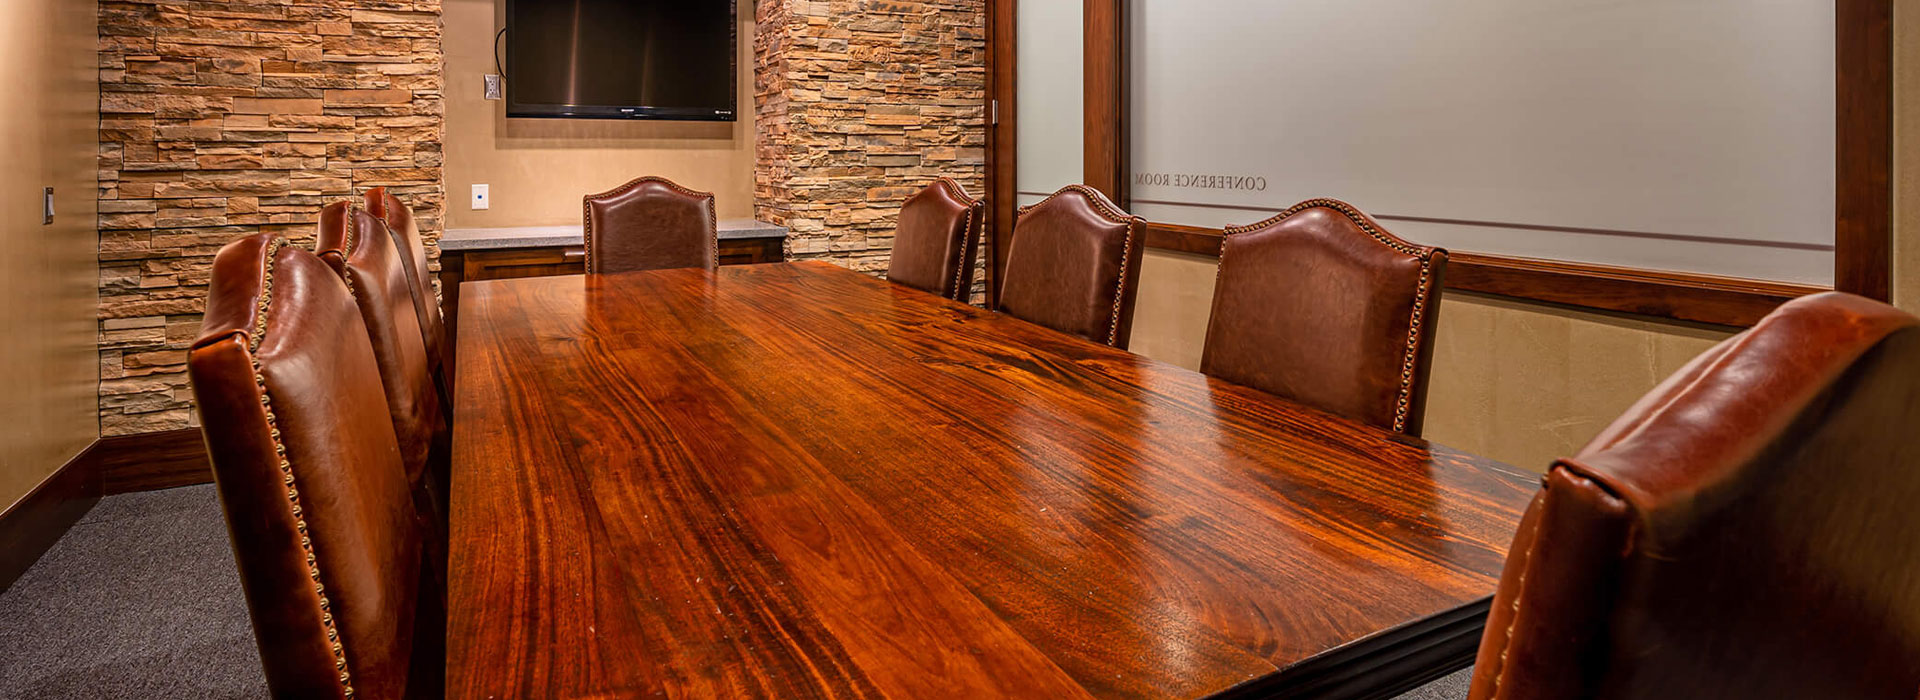 Conference Room at Athena Gun Club in Houston, TX